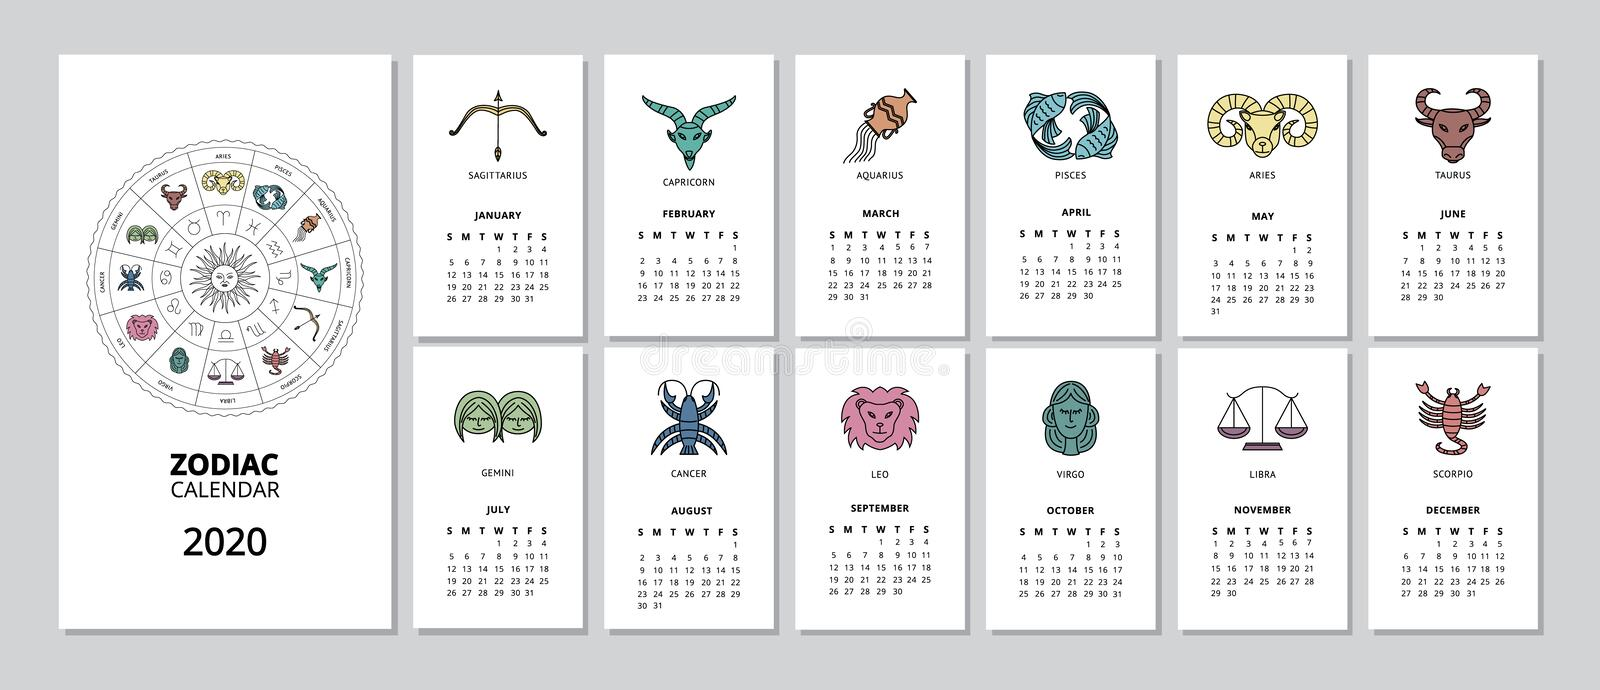 2020 monthly Zodiac calendar with star sign page for every month stock photo